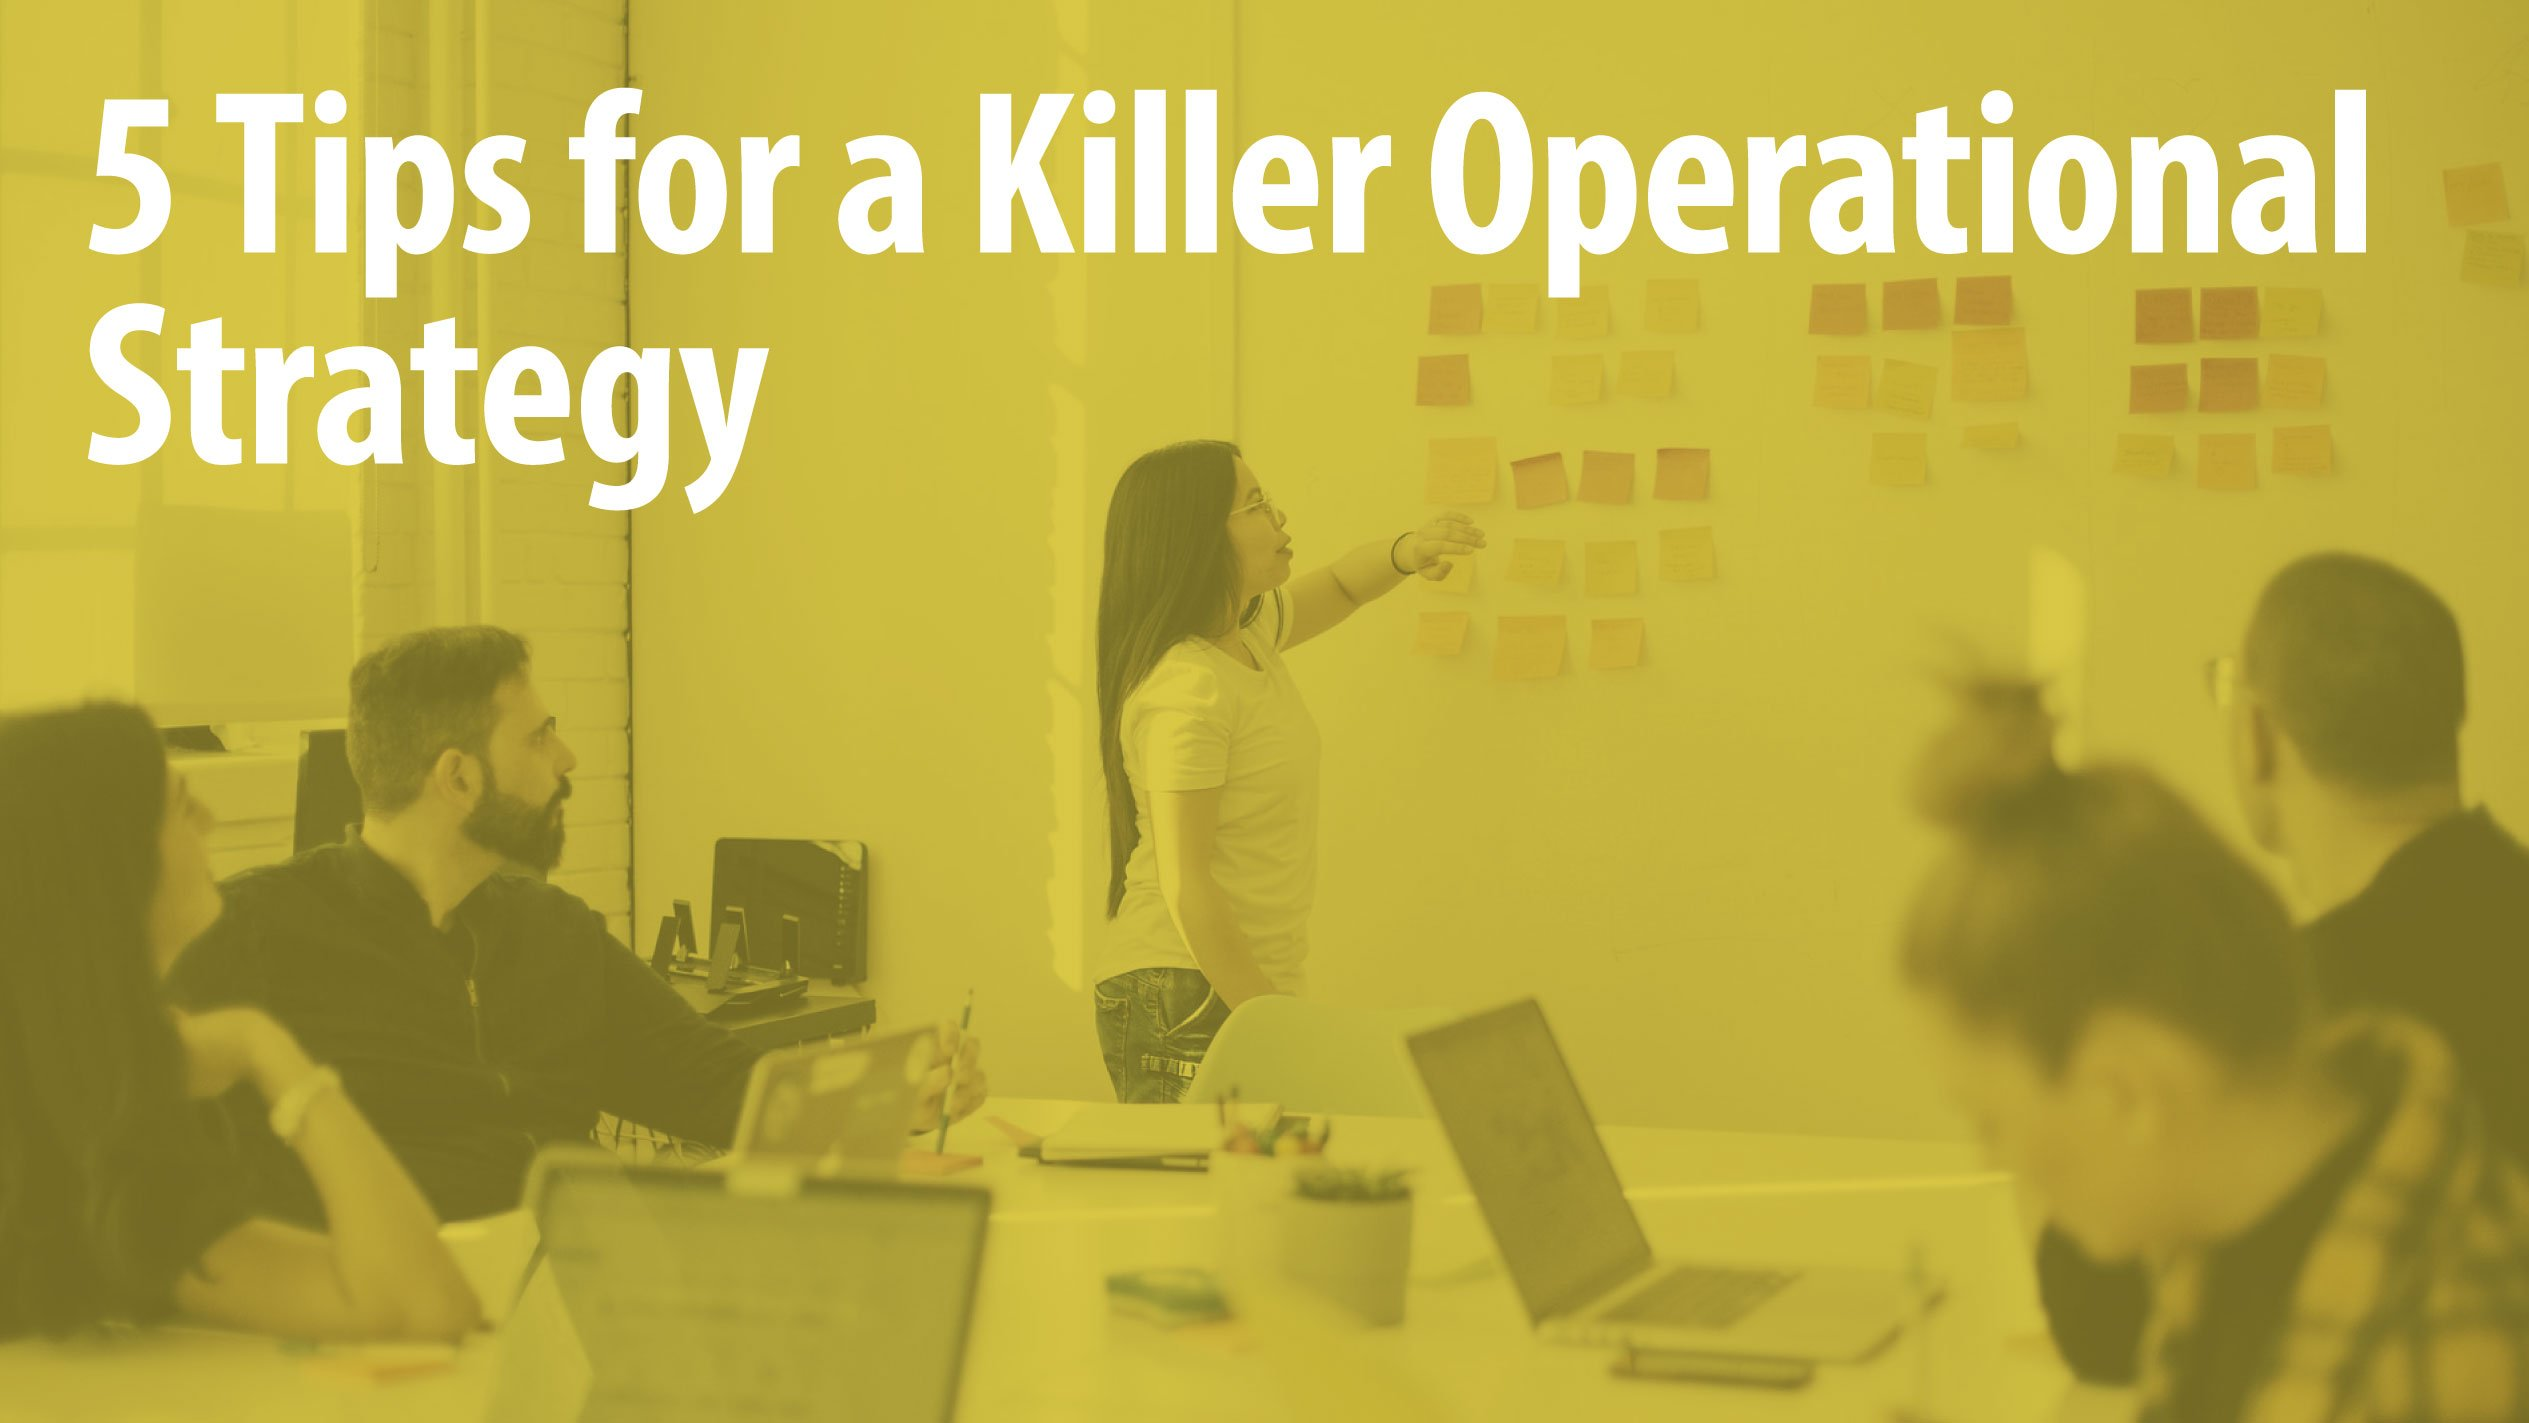 5 Tips for a Killer Operational Strategy